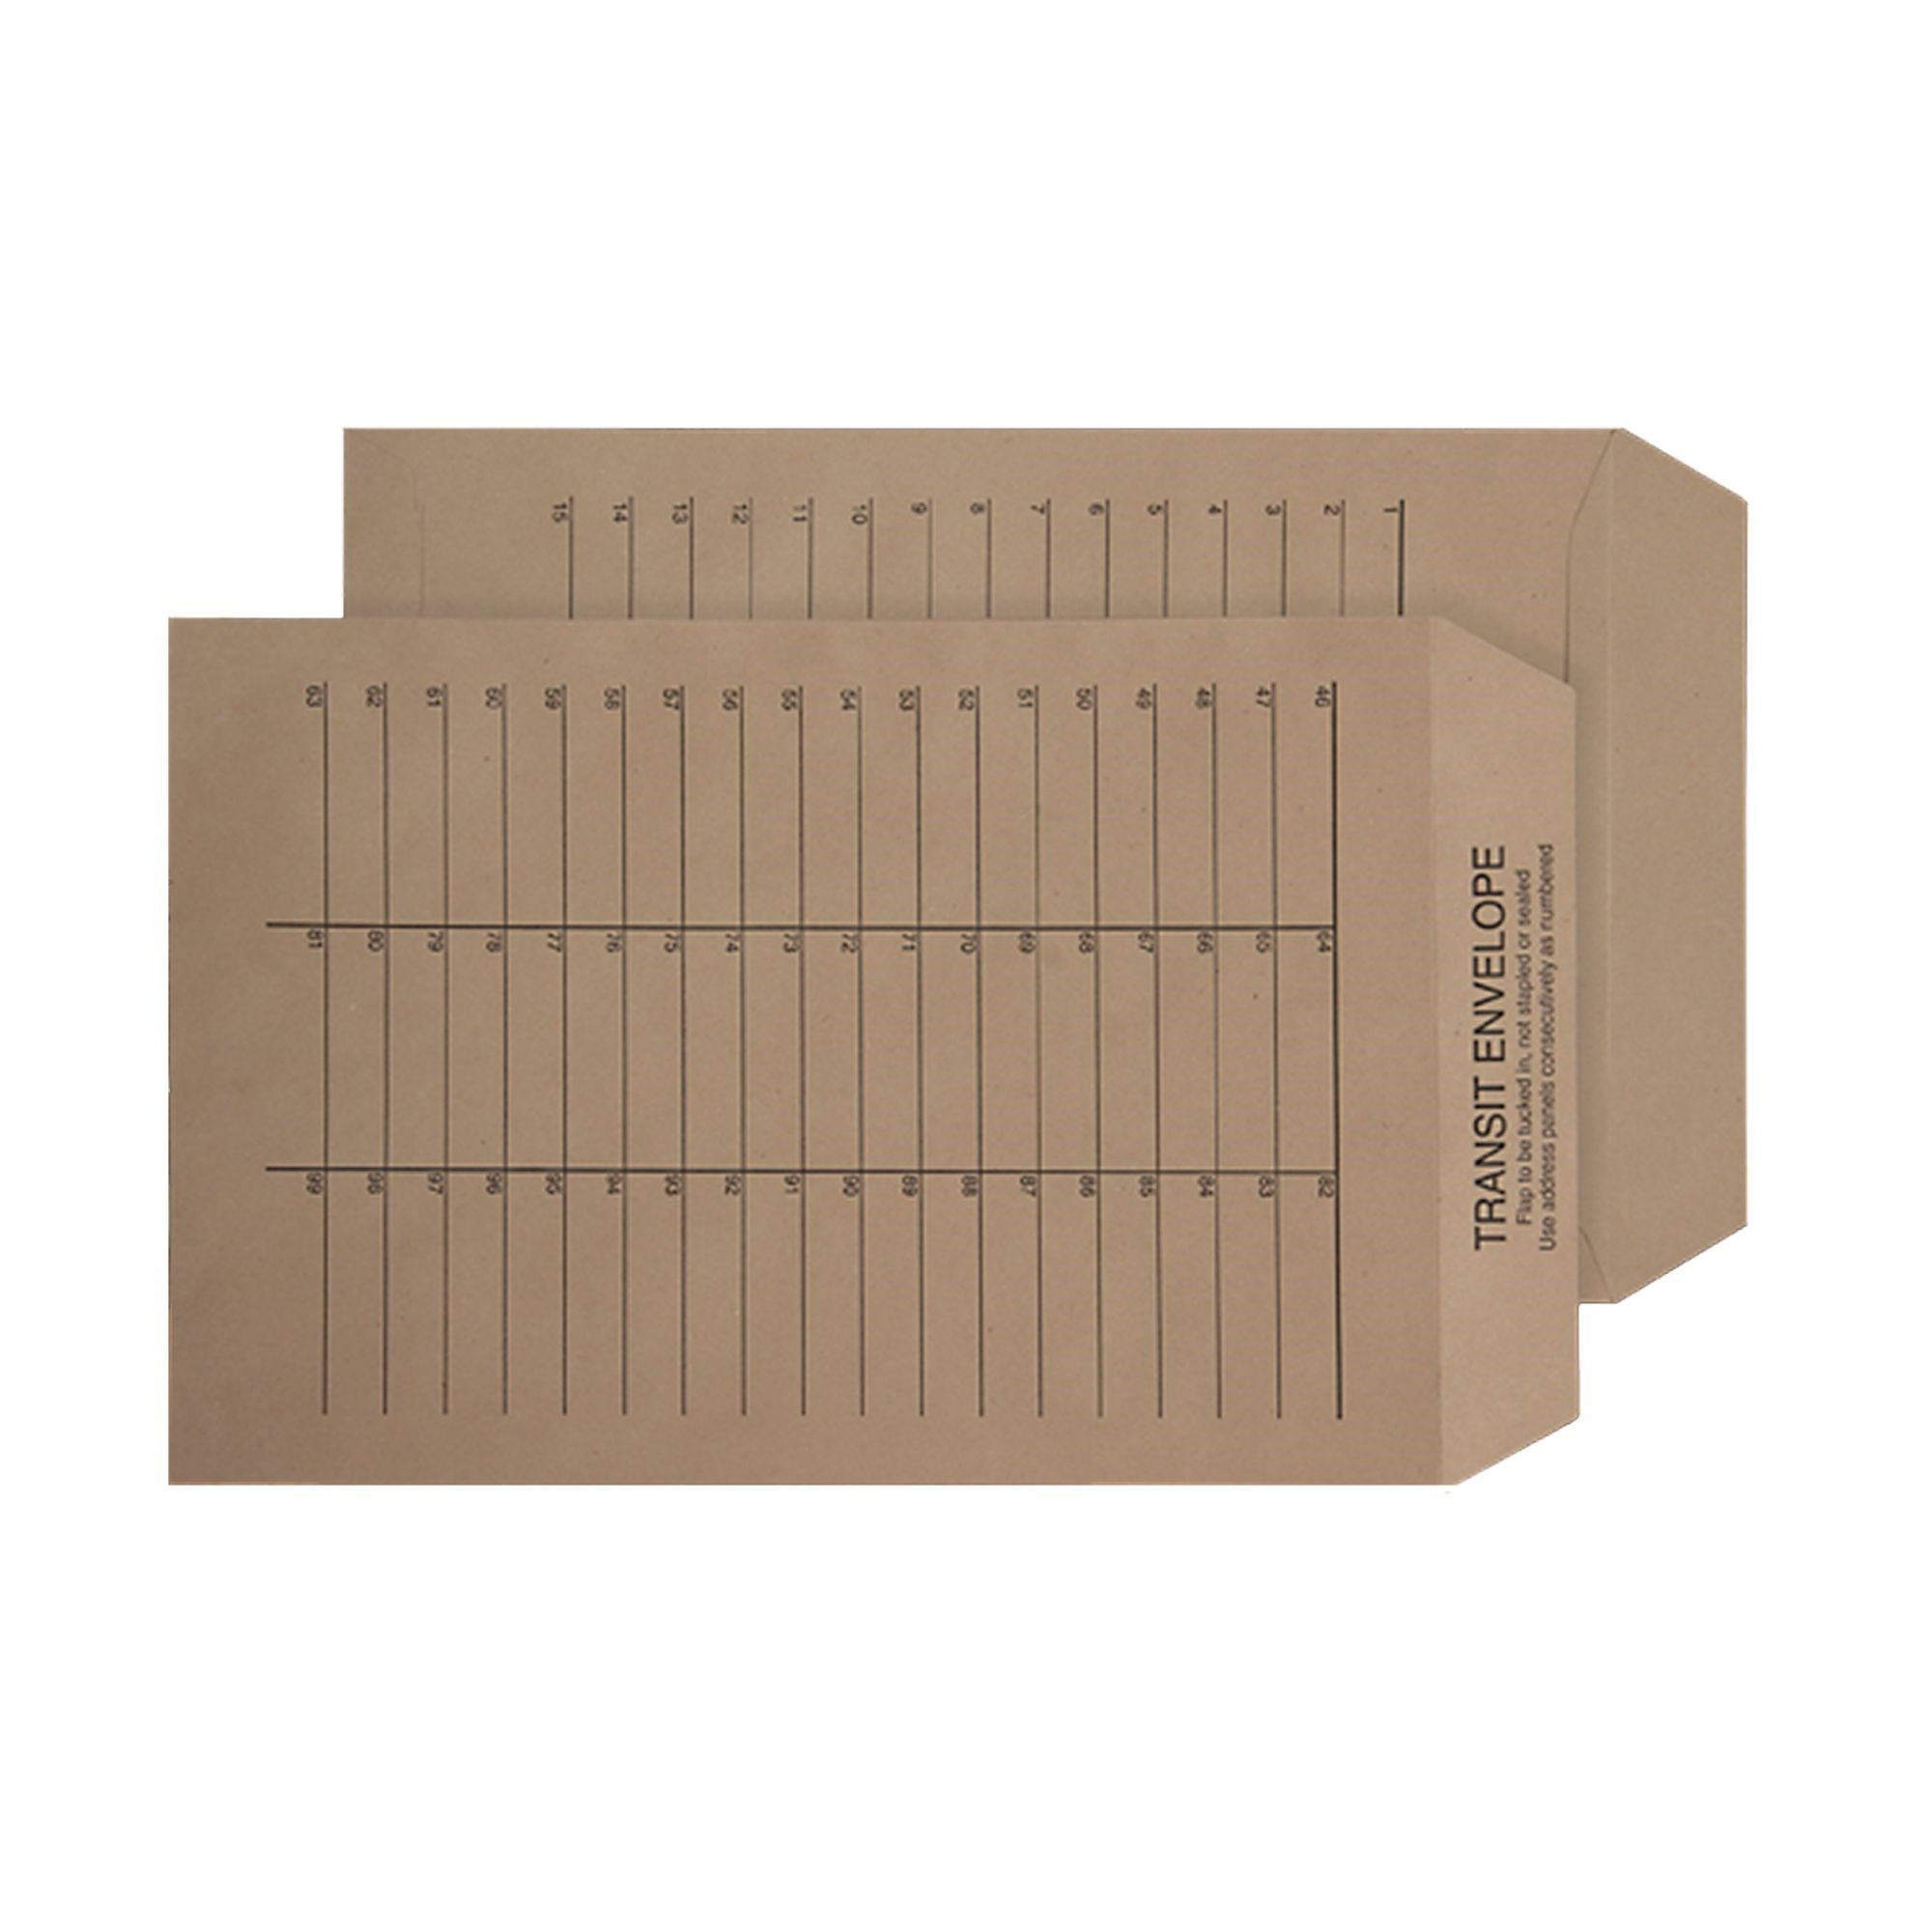 C4 Internal Mail Mail Resealable Envelopes [Box of 250]